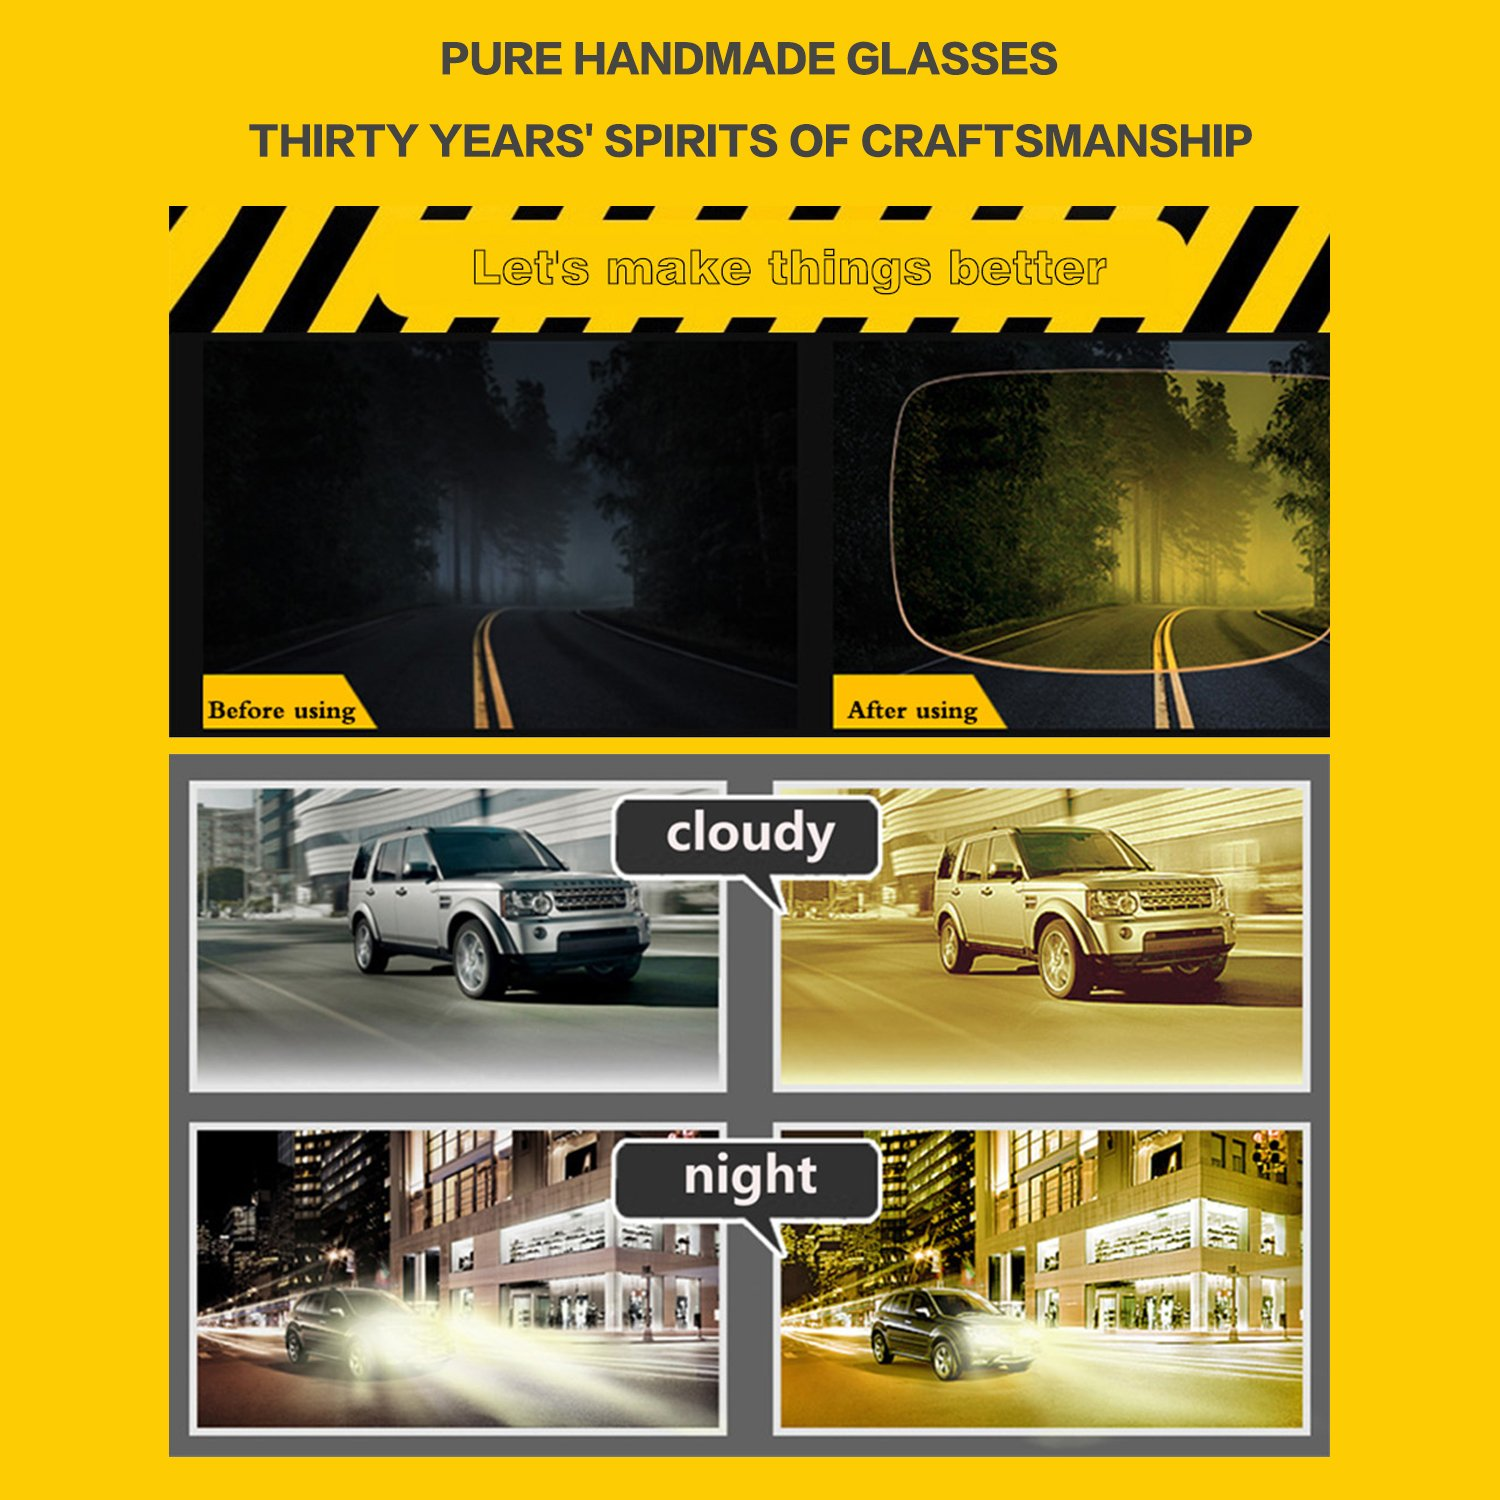 SOXICK 2018 New Style Night Driving Glasses - Anti-glare HD Vision - Safety Night Vision glasses for Men and Women (3) by SOXICK (Image #7)